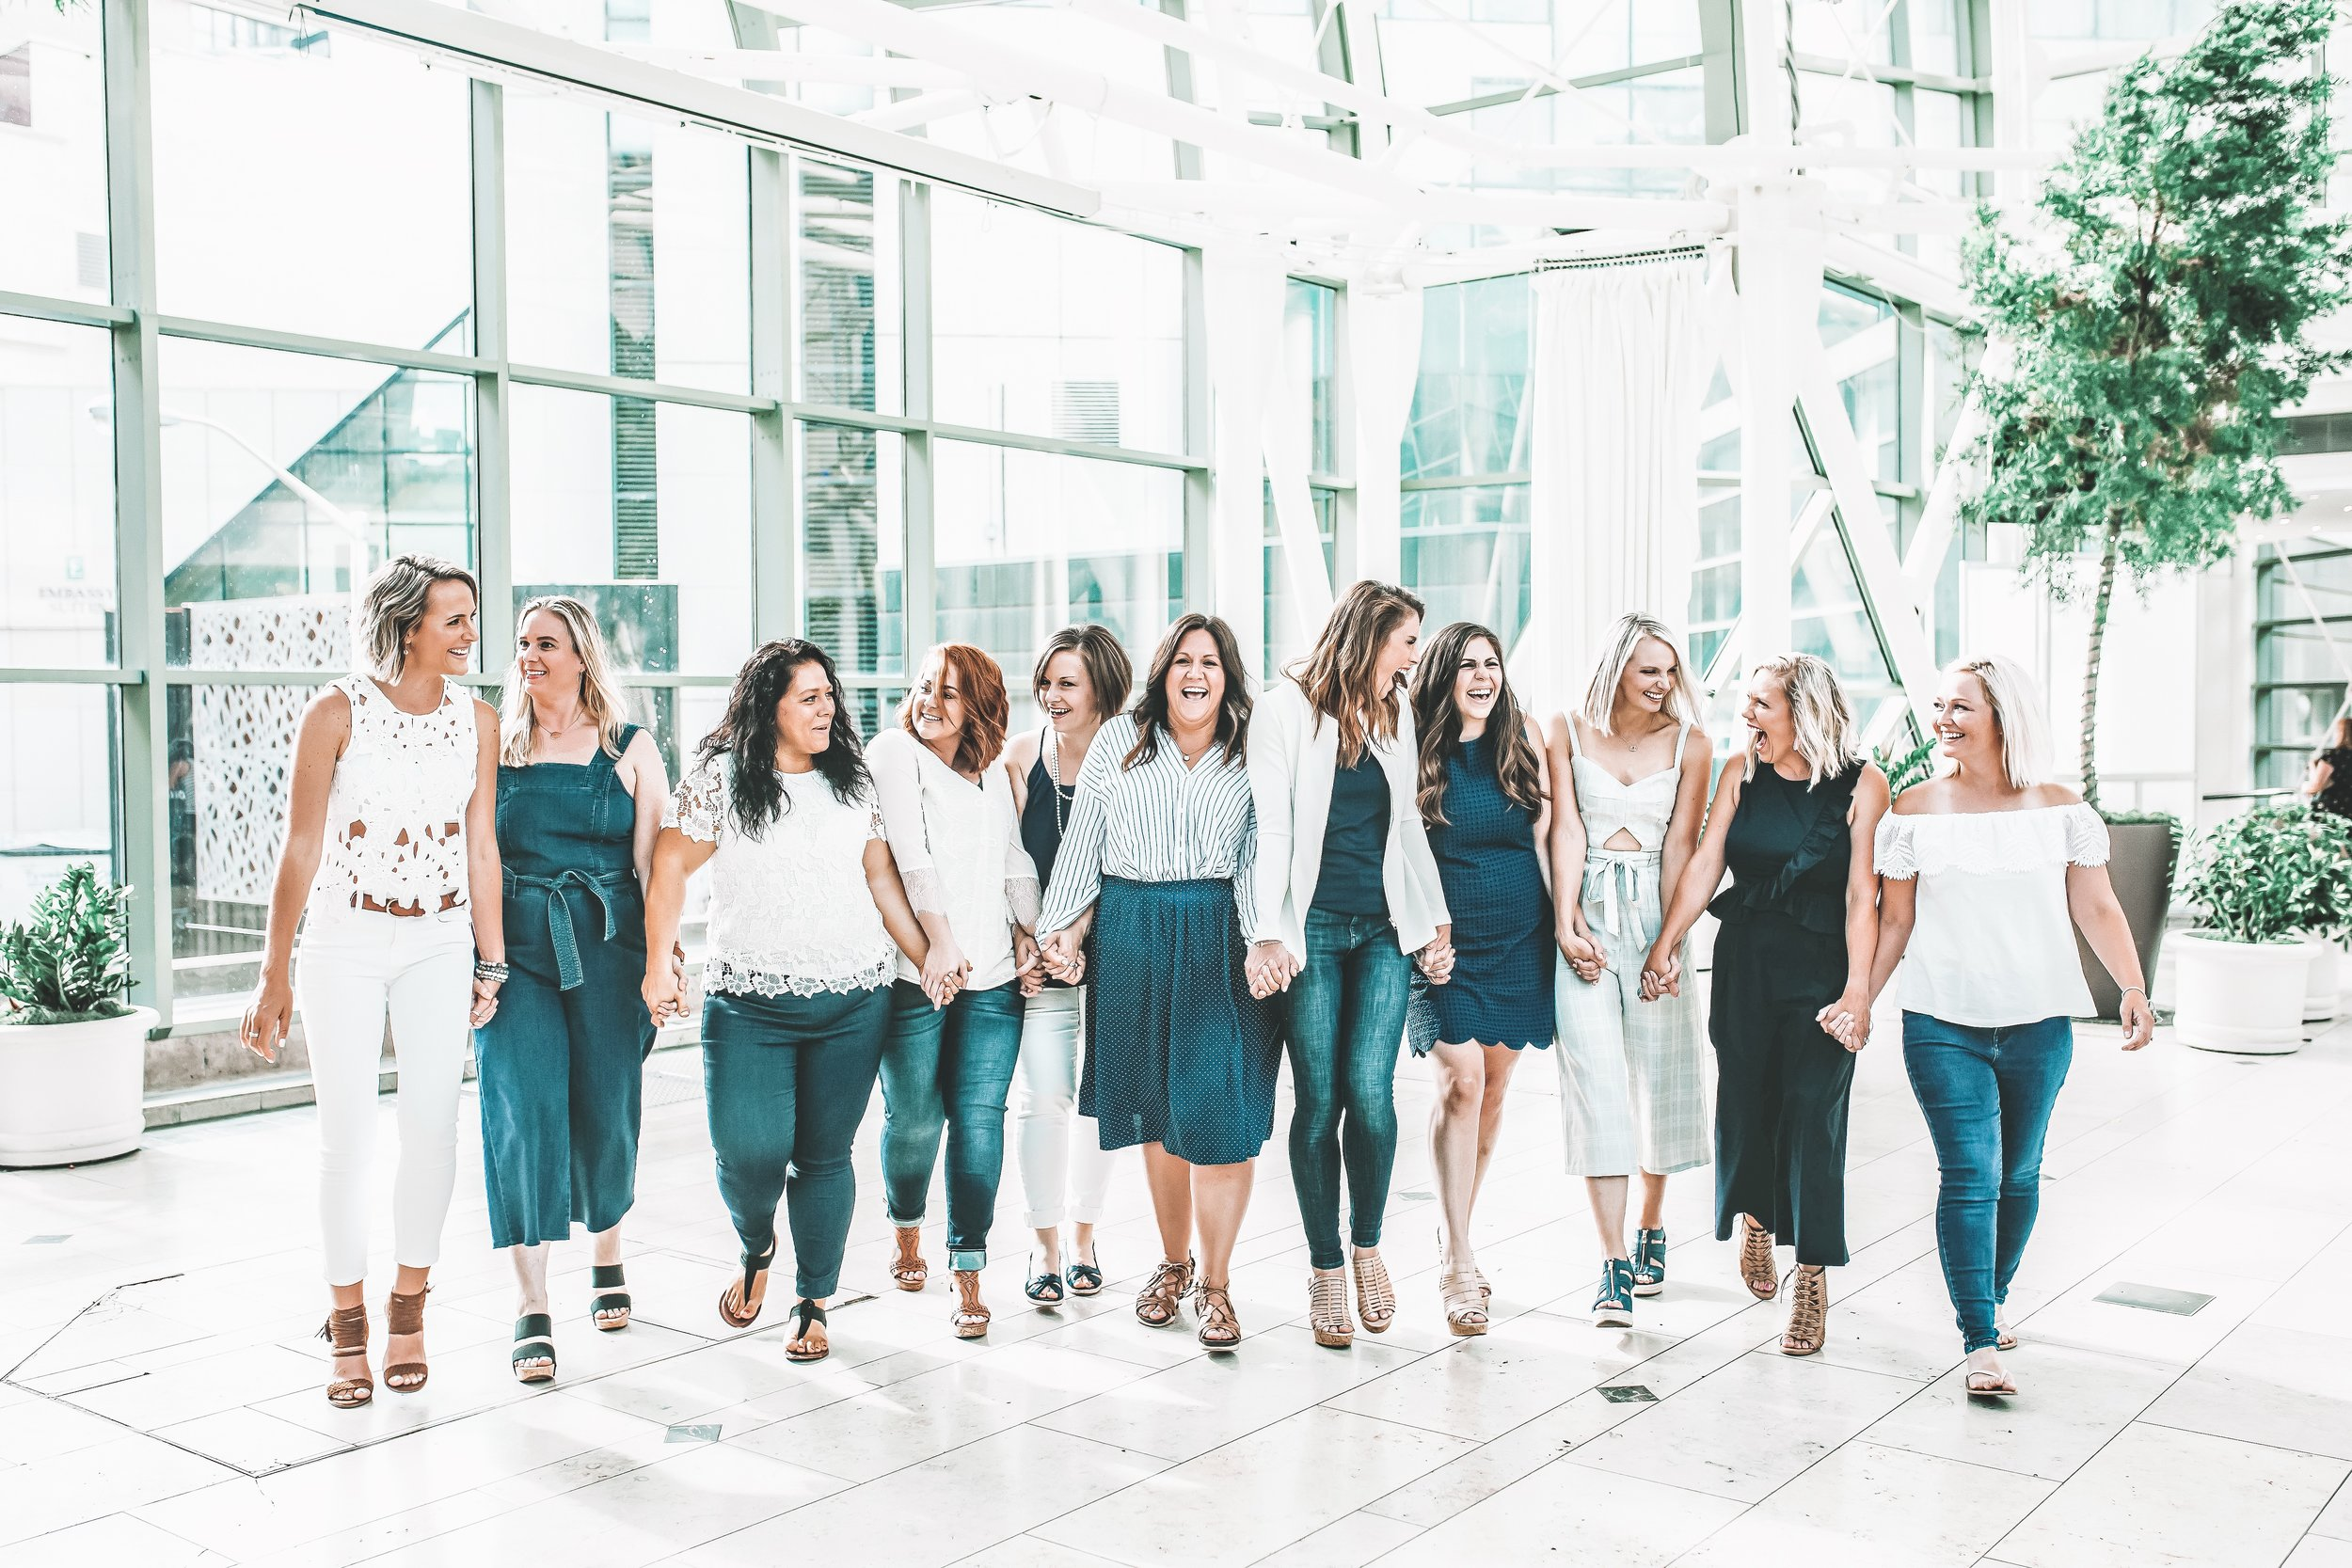 Team Eat. Sweat. Pray. is a tribe of Wellness Influencers-And we want you to join us! -